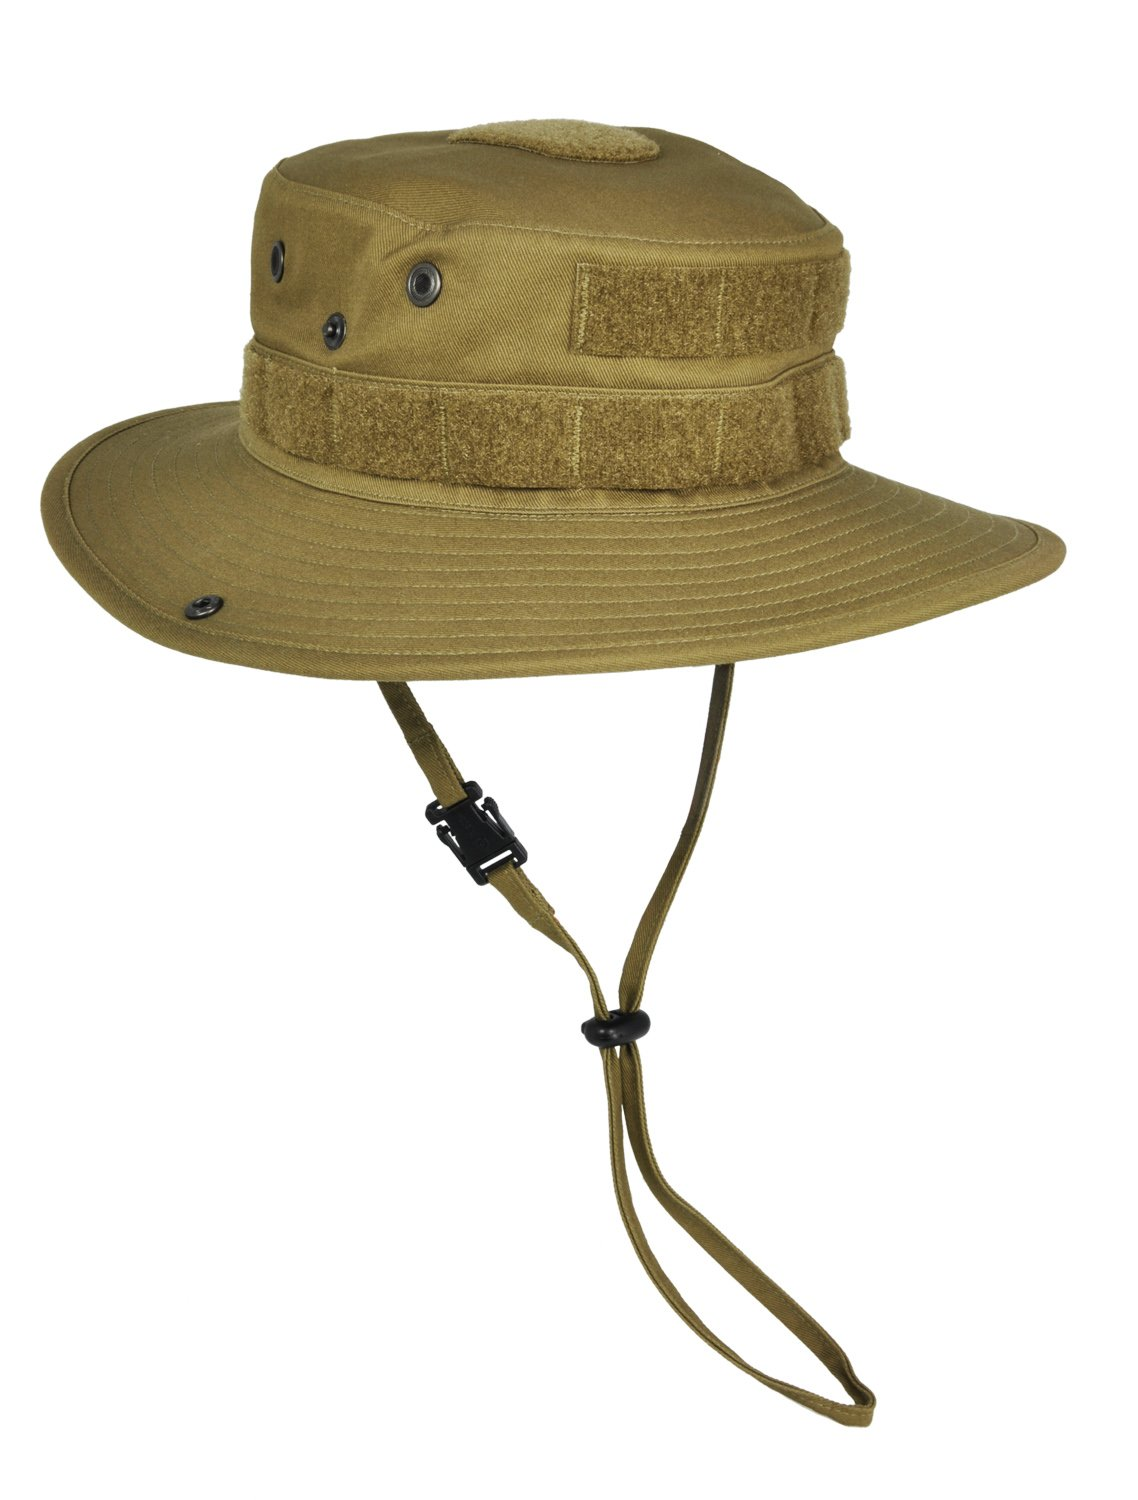 HAZARD 4 SunTac Cotton Boonie Hat with Molle, Coyote, Large